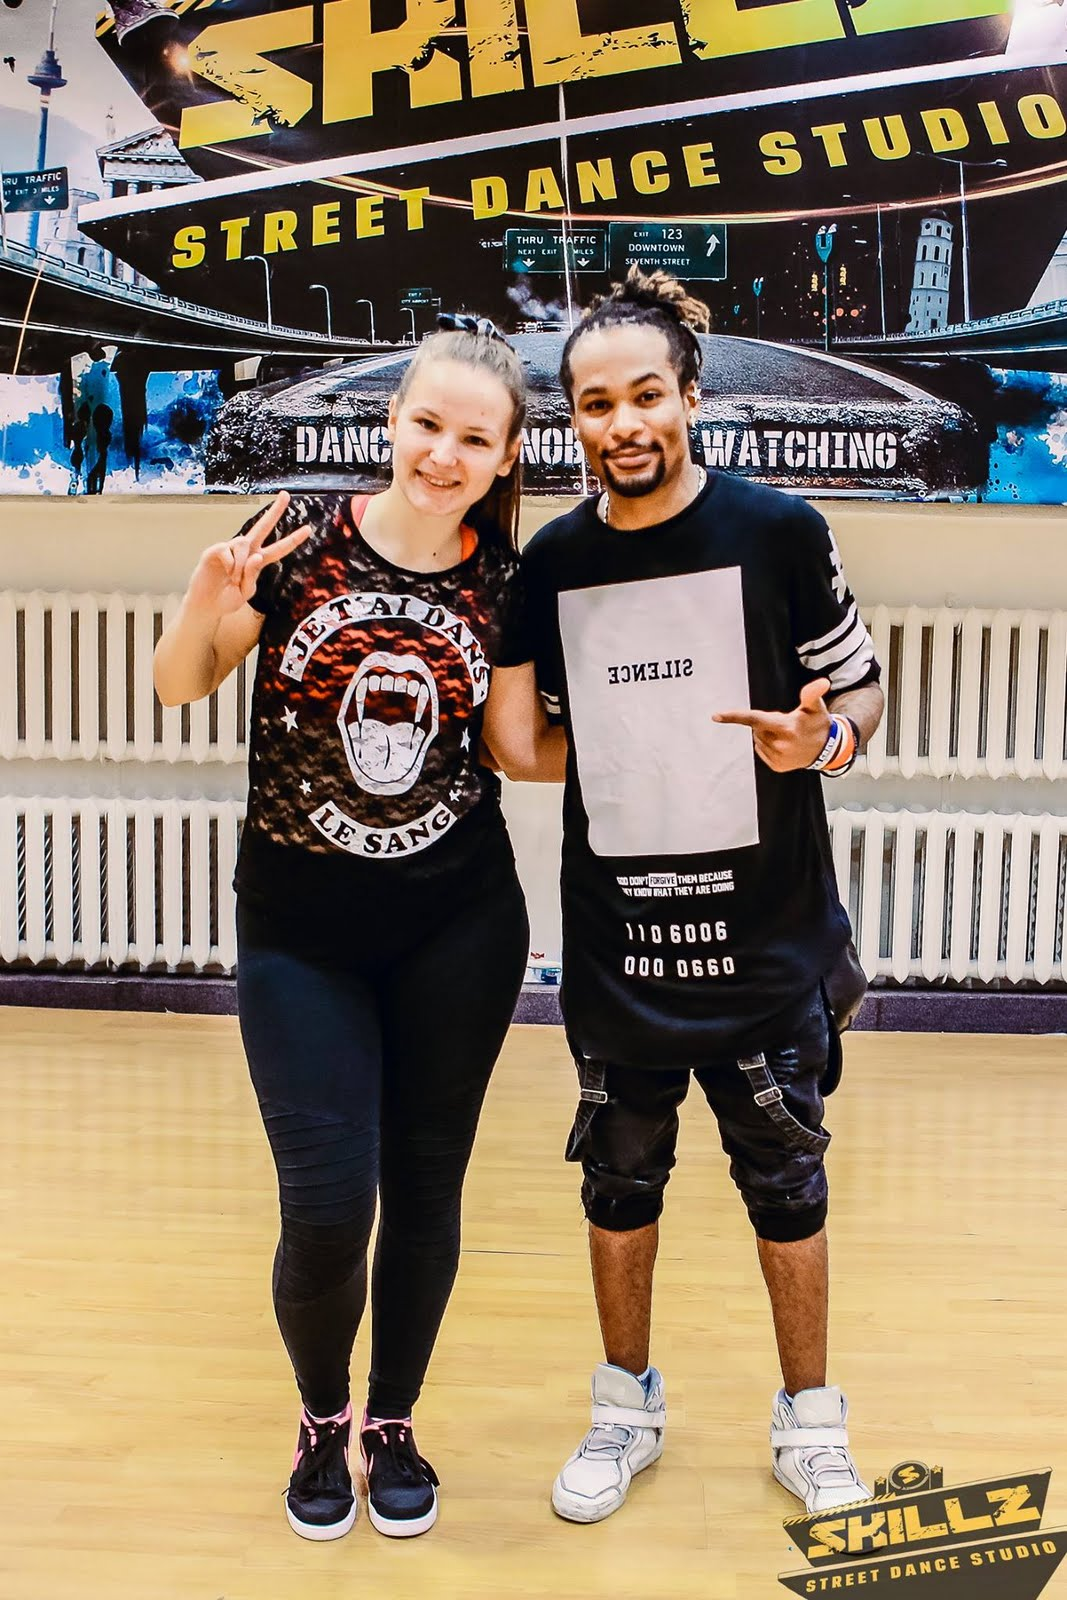 Dancehall workshop with Jiggy (France) - 68.jpg